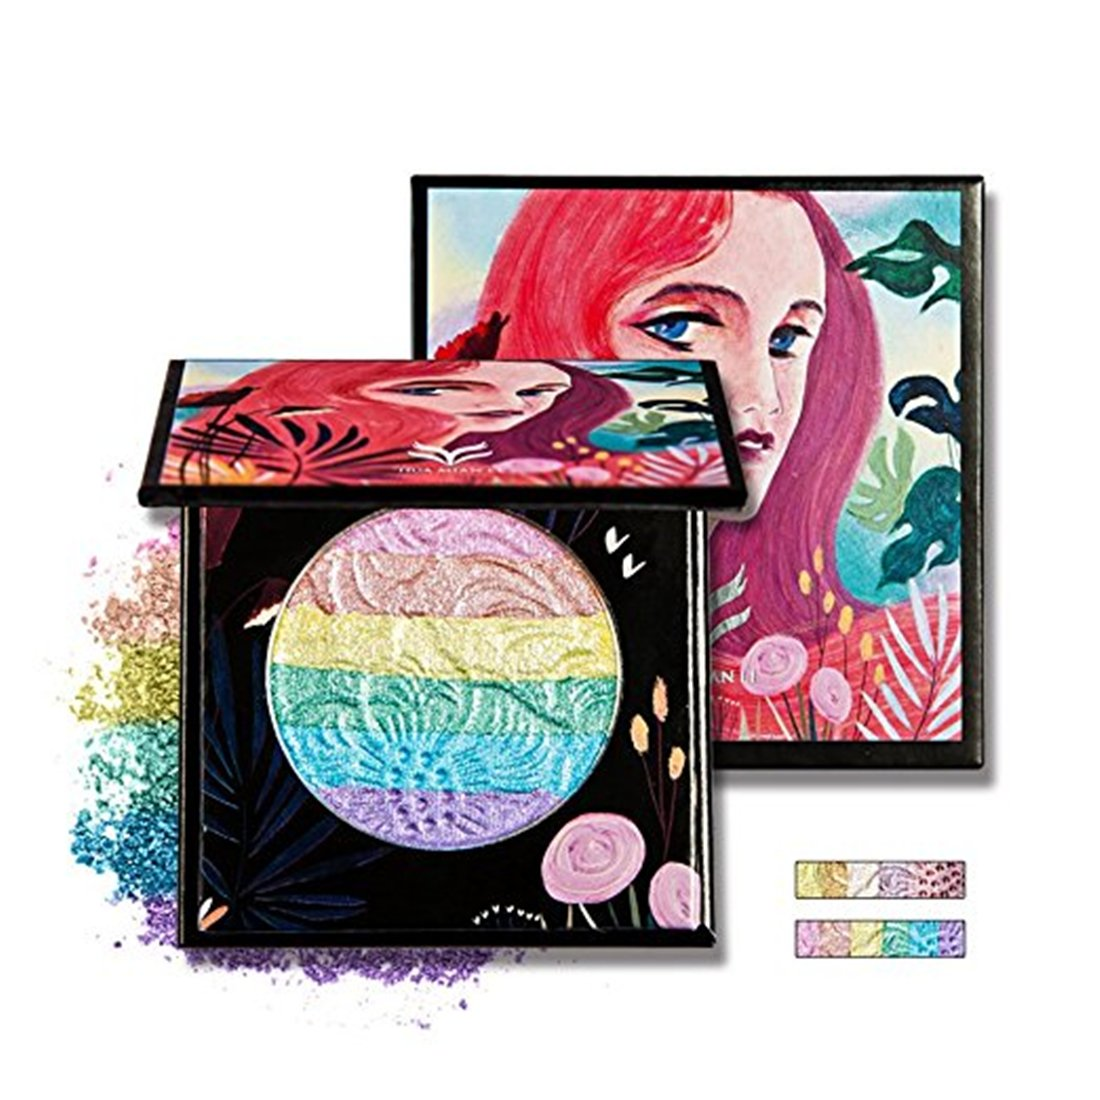 Pure Vie Professional 7 Colors Rainbow Eyeshadow Palette Makeup Contouring Kit for Salon and Daily Use